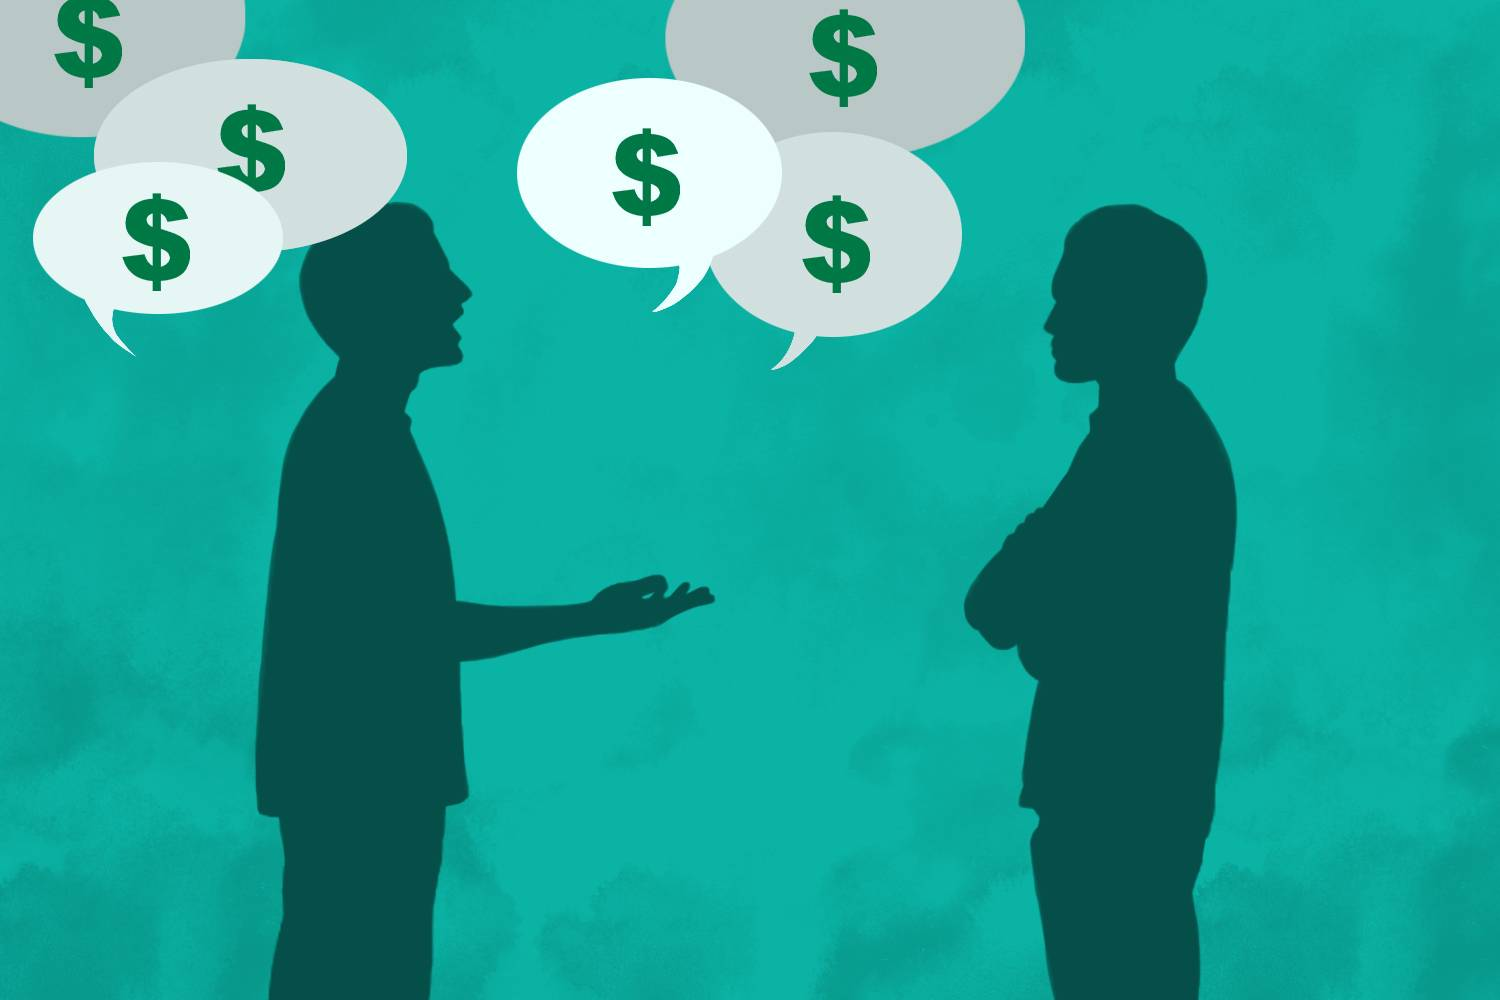 Infographic of two people, one talking about money with dollar symbols in conversation bubbles and the other listening with his arms folded in a skeptical way